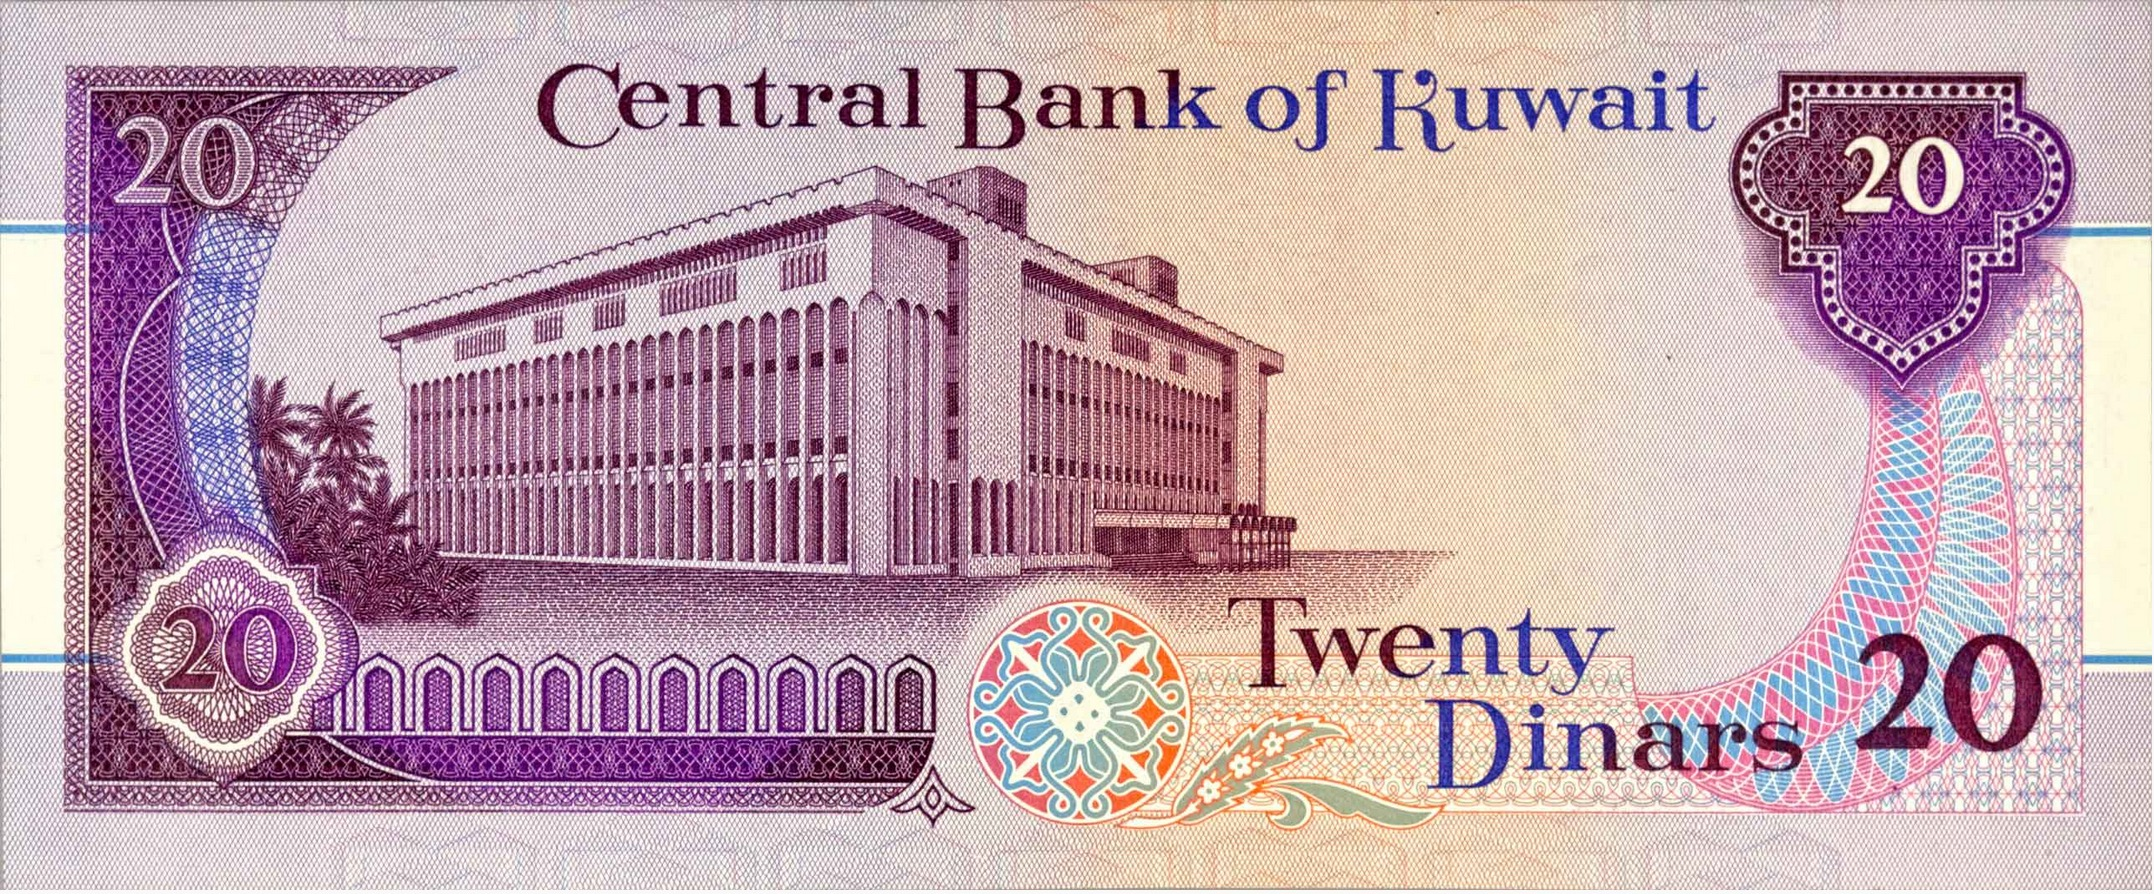 20 Kuwaiti Dinar Banknote 4th Issue